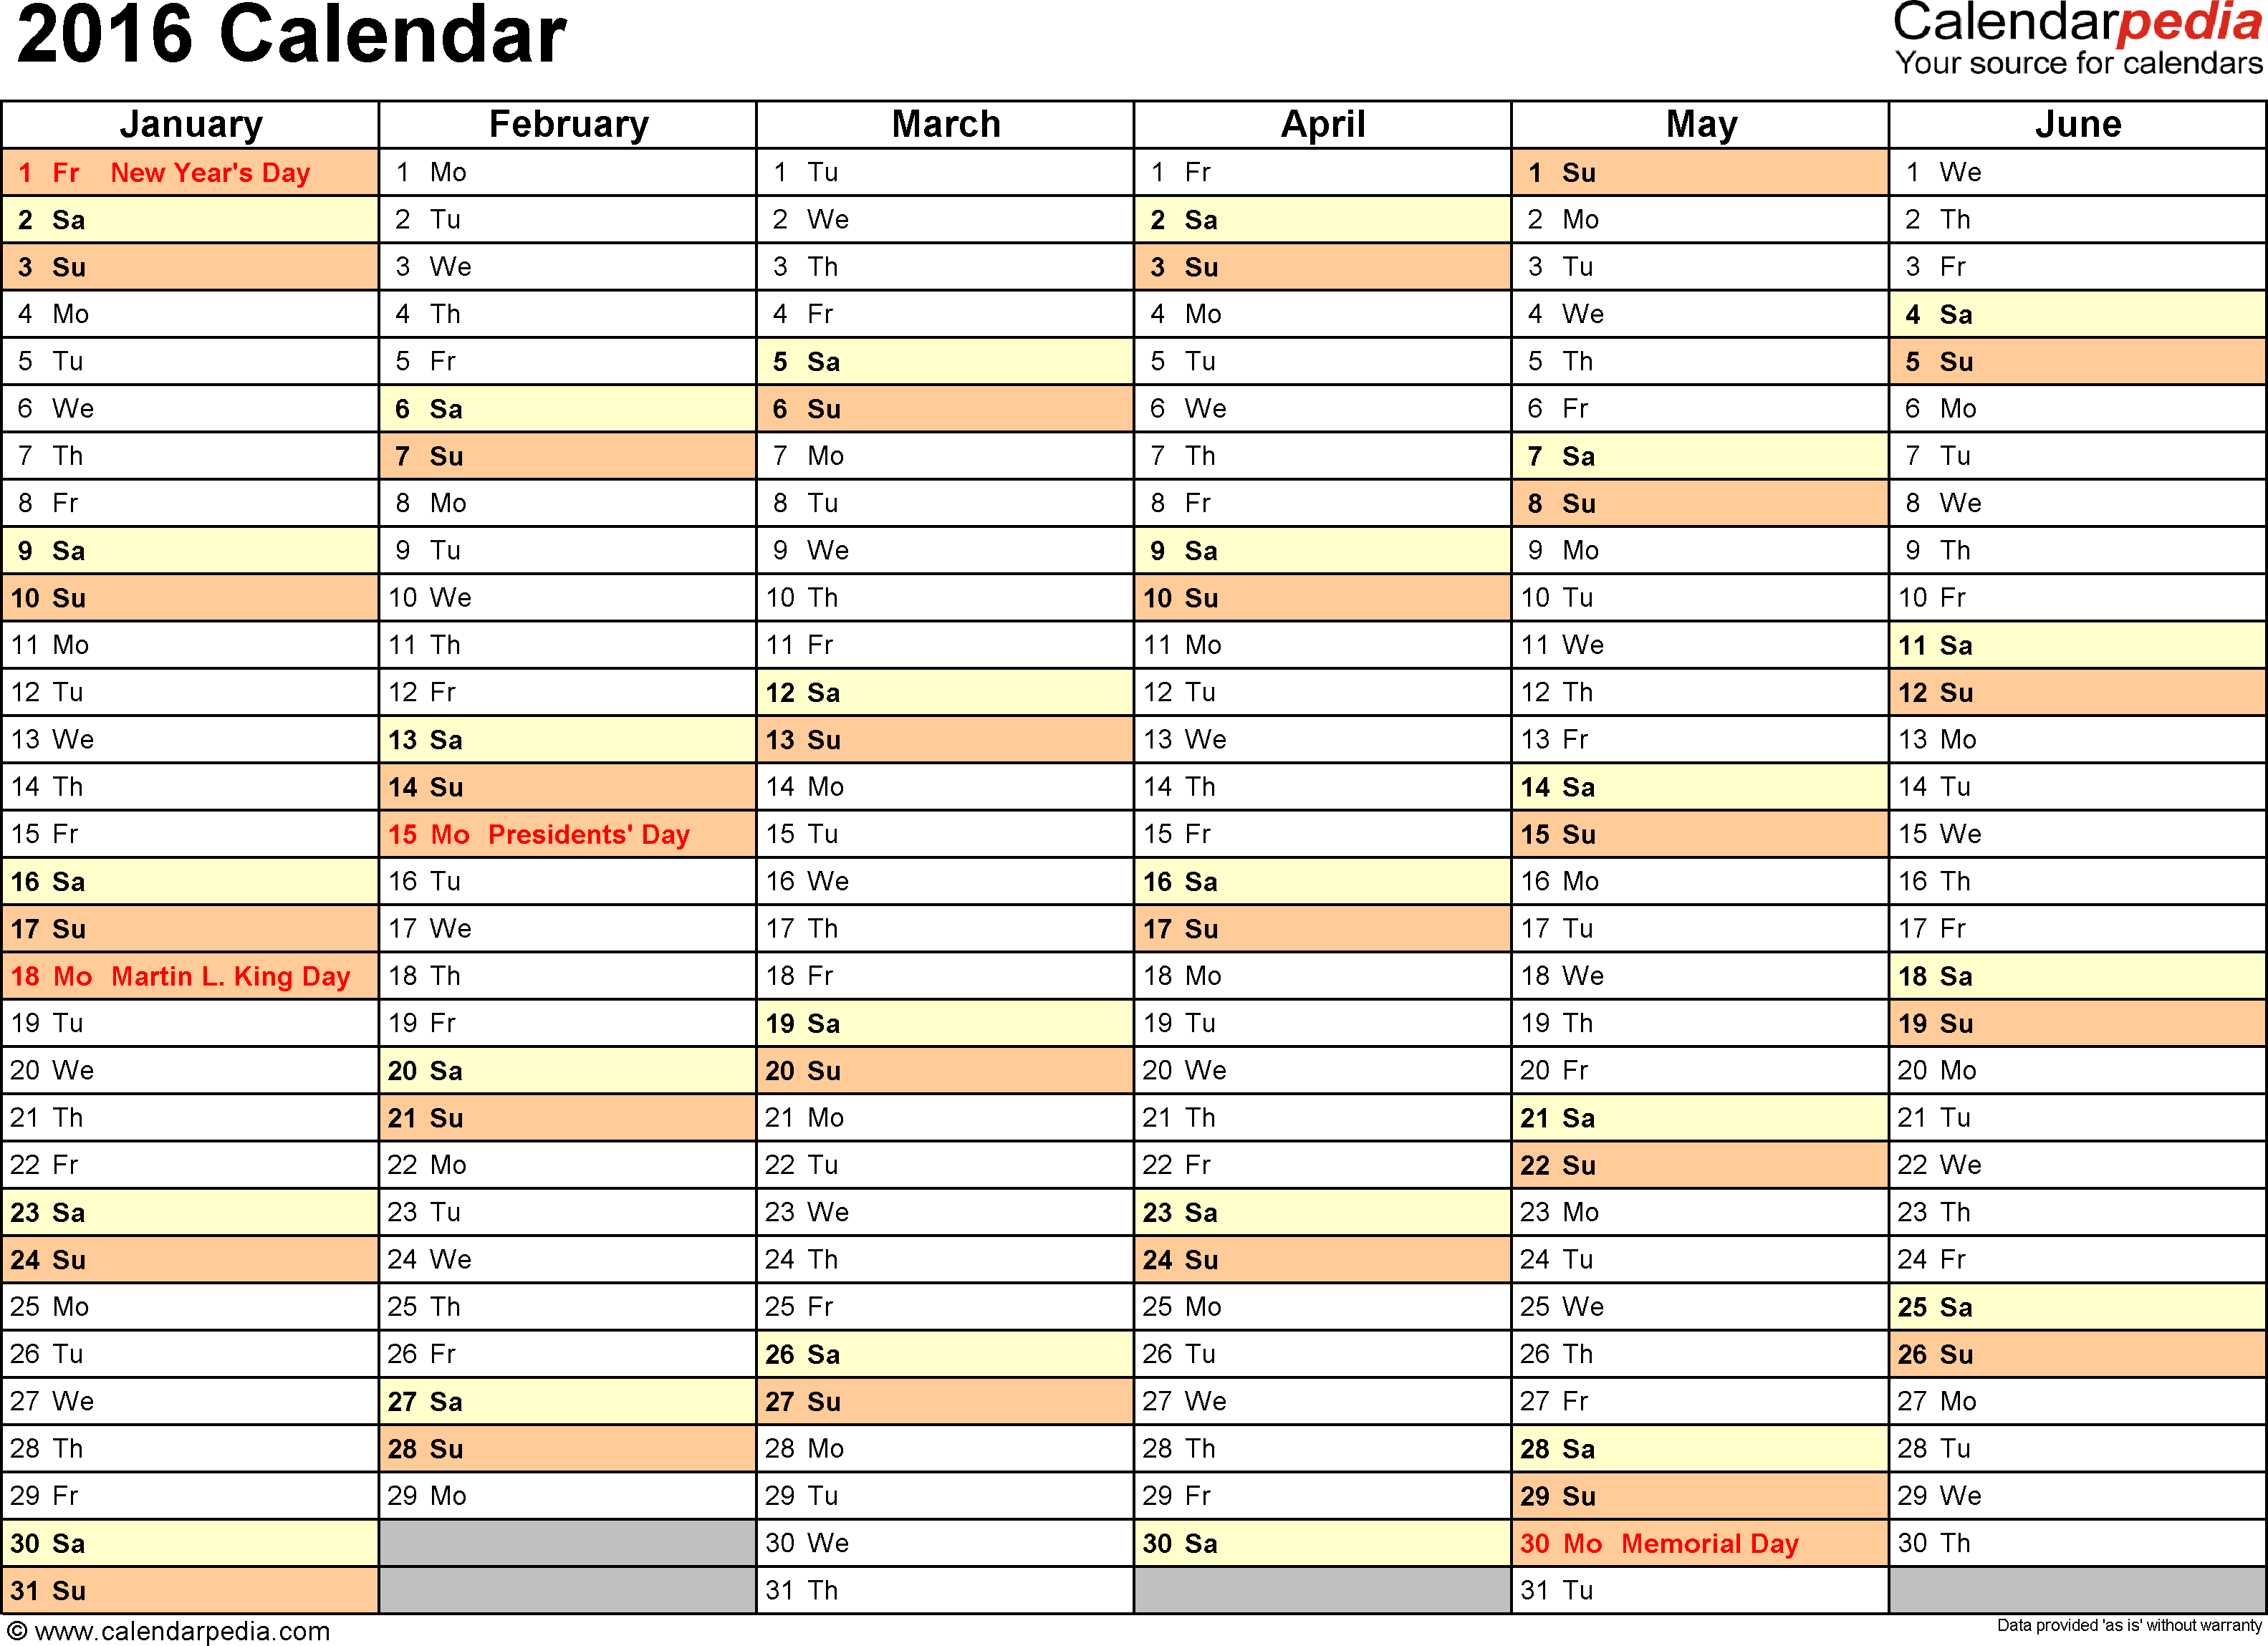 Ediblewildsus  Inspiring  Calendar  Download  Free Printable Excel Templates Xls With Glamorous Template   Calendar For Excel Months Horizontally  Pages Landscape Orientation With Agreeable Invoice In Excel Also Insert Current Date Excel In Addition Excel  Named Range And How To Set Up Formulas In Excel As Well As Learn Microsoft Excel Free Additionally Excel Todo List From Calendarpediacom With Ediblewildsus  Glamorous  Calendar  Download  Free Printable Excel Templates Xls With Agreeable Template   Calendar For Excel Months Horizontally  Pages Landscape Orientation And Inspiring Invoice In Excel Also Insert Current Date Excel In Addition Excel  Named Range From Calendarpediacom